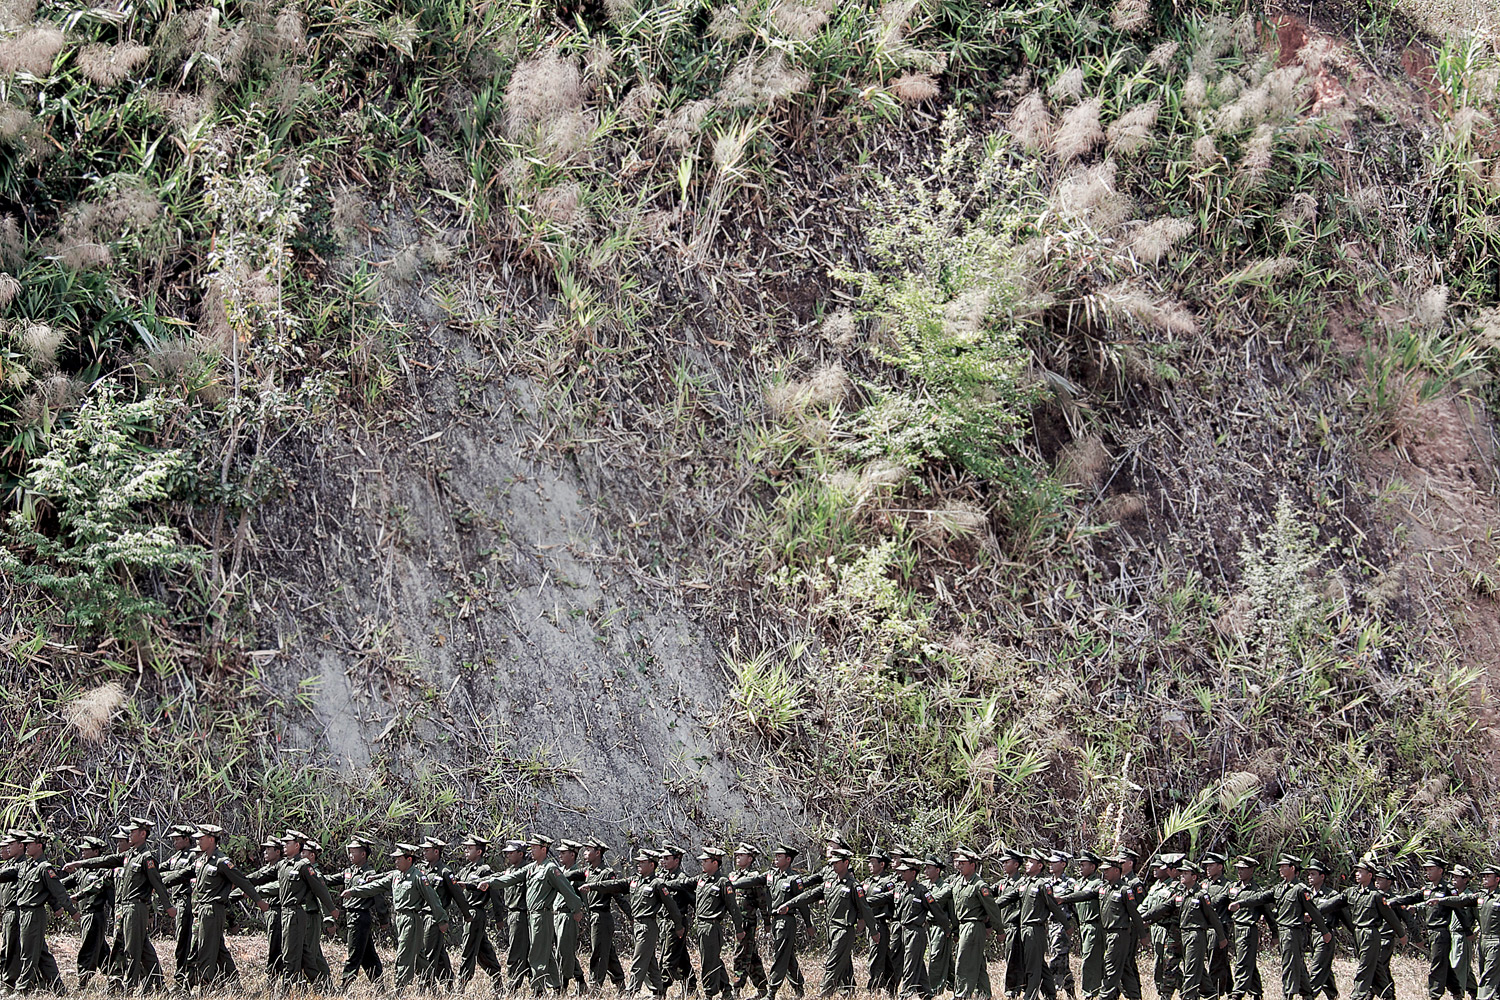 KIA officers perform a military training at the School of Officers, situated in a secret location in the high mountains some kilometers away from Laiza city, the headquarters of the rebel Kachin Independence Army.